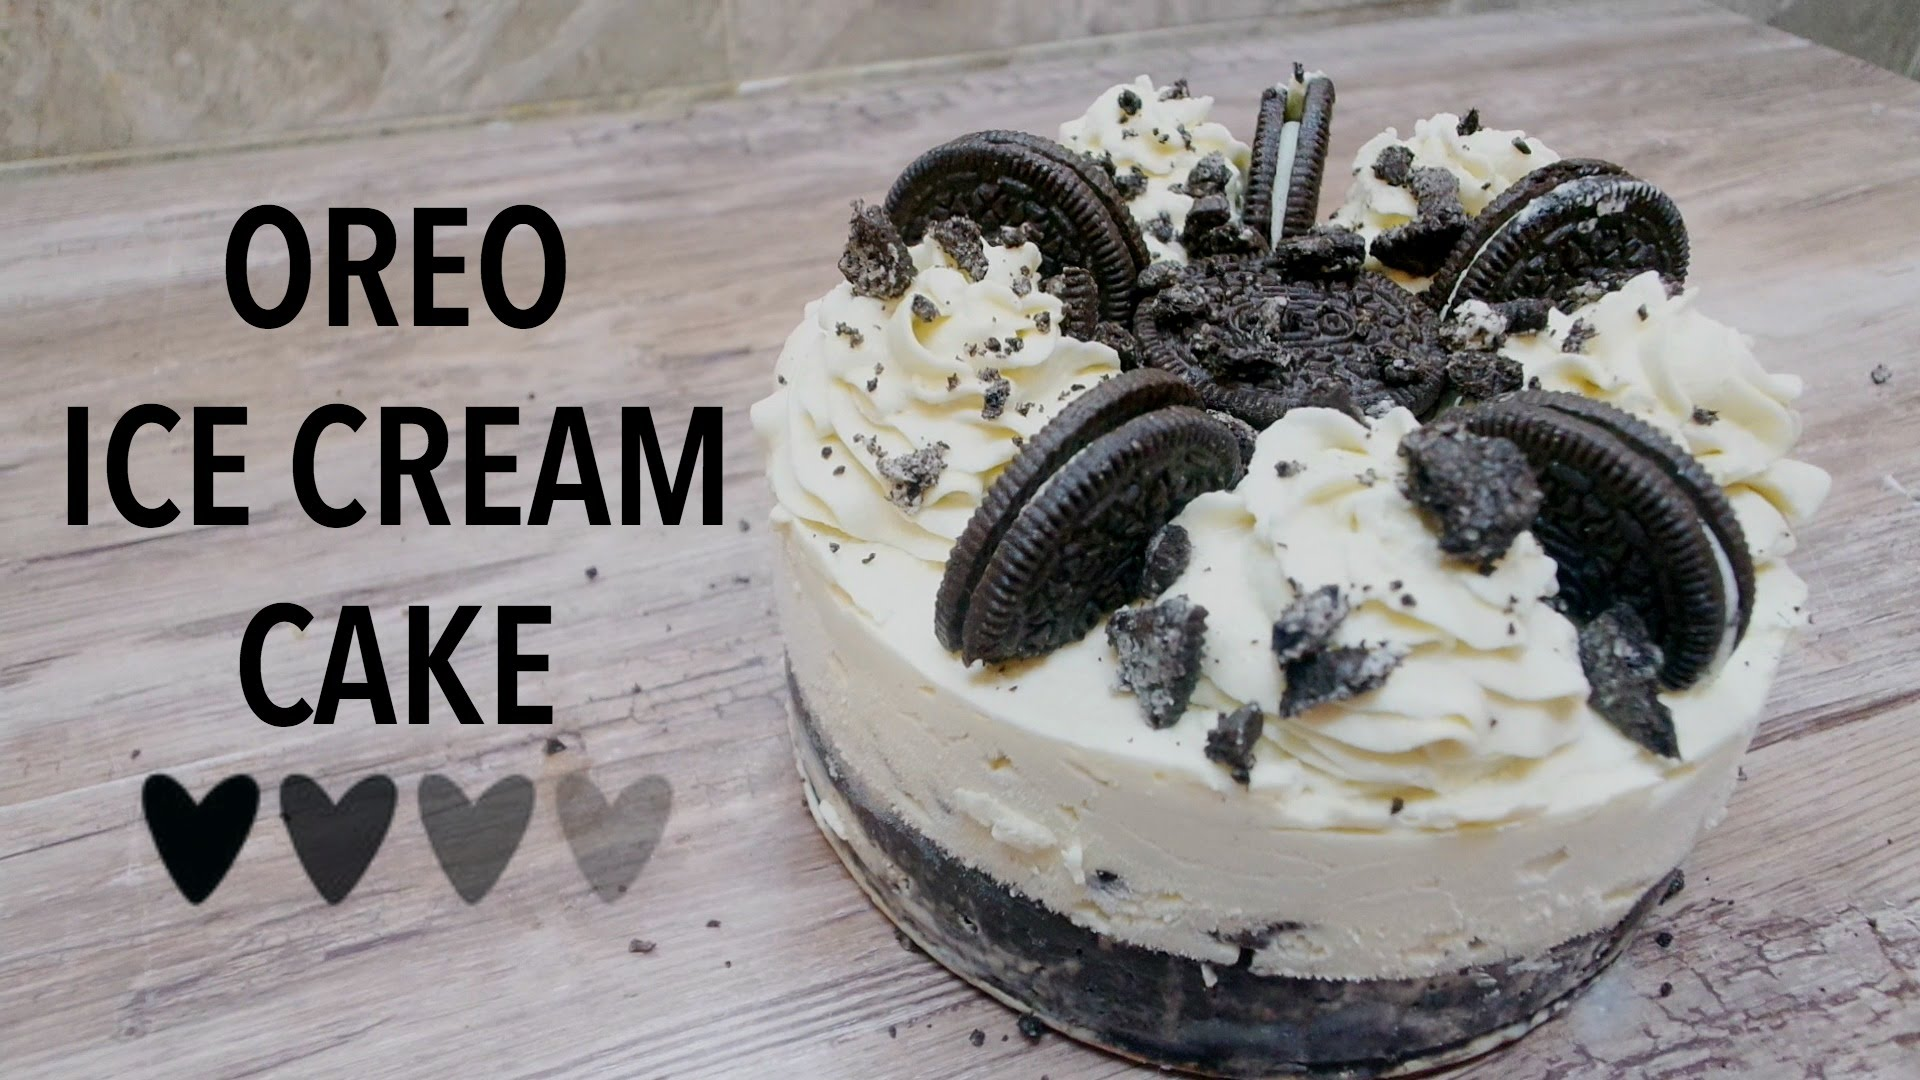 Oreo Ice Cream Cake Recipe